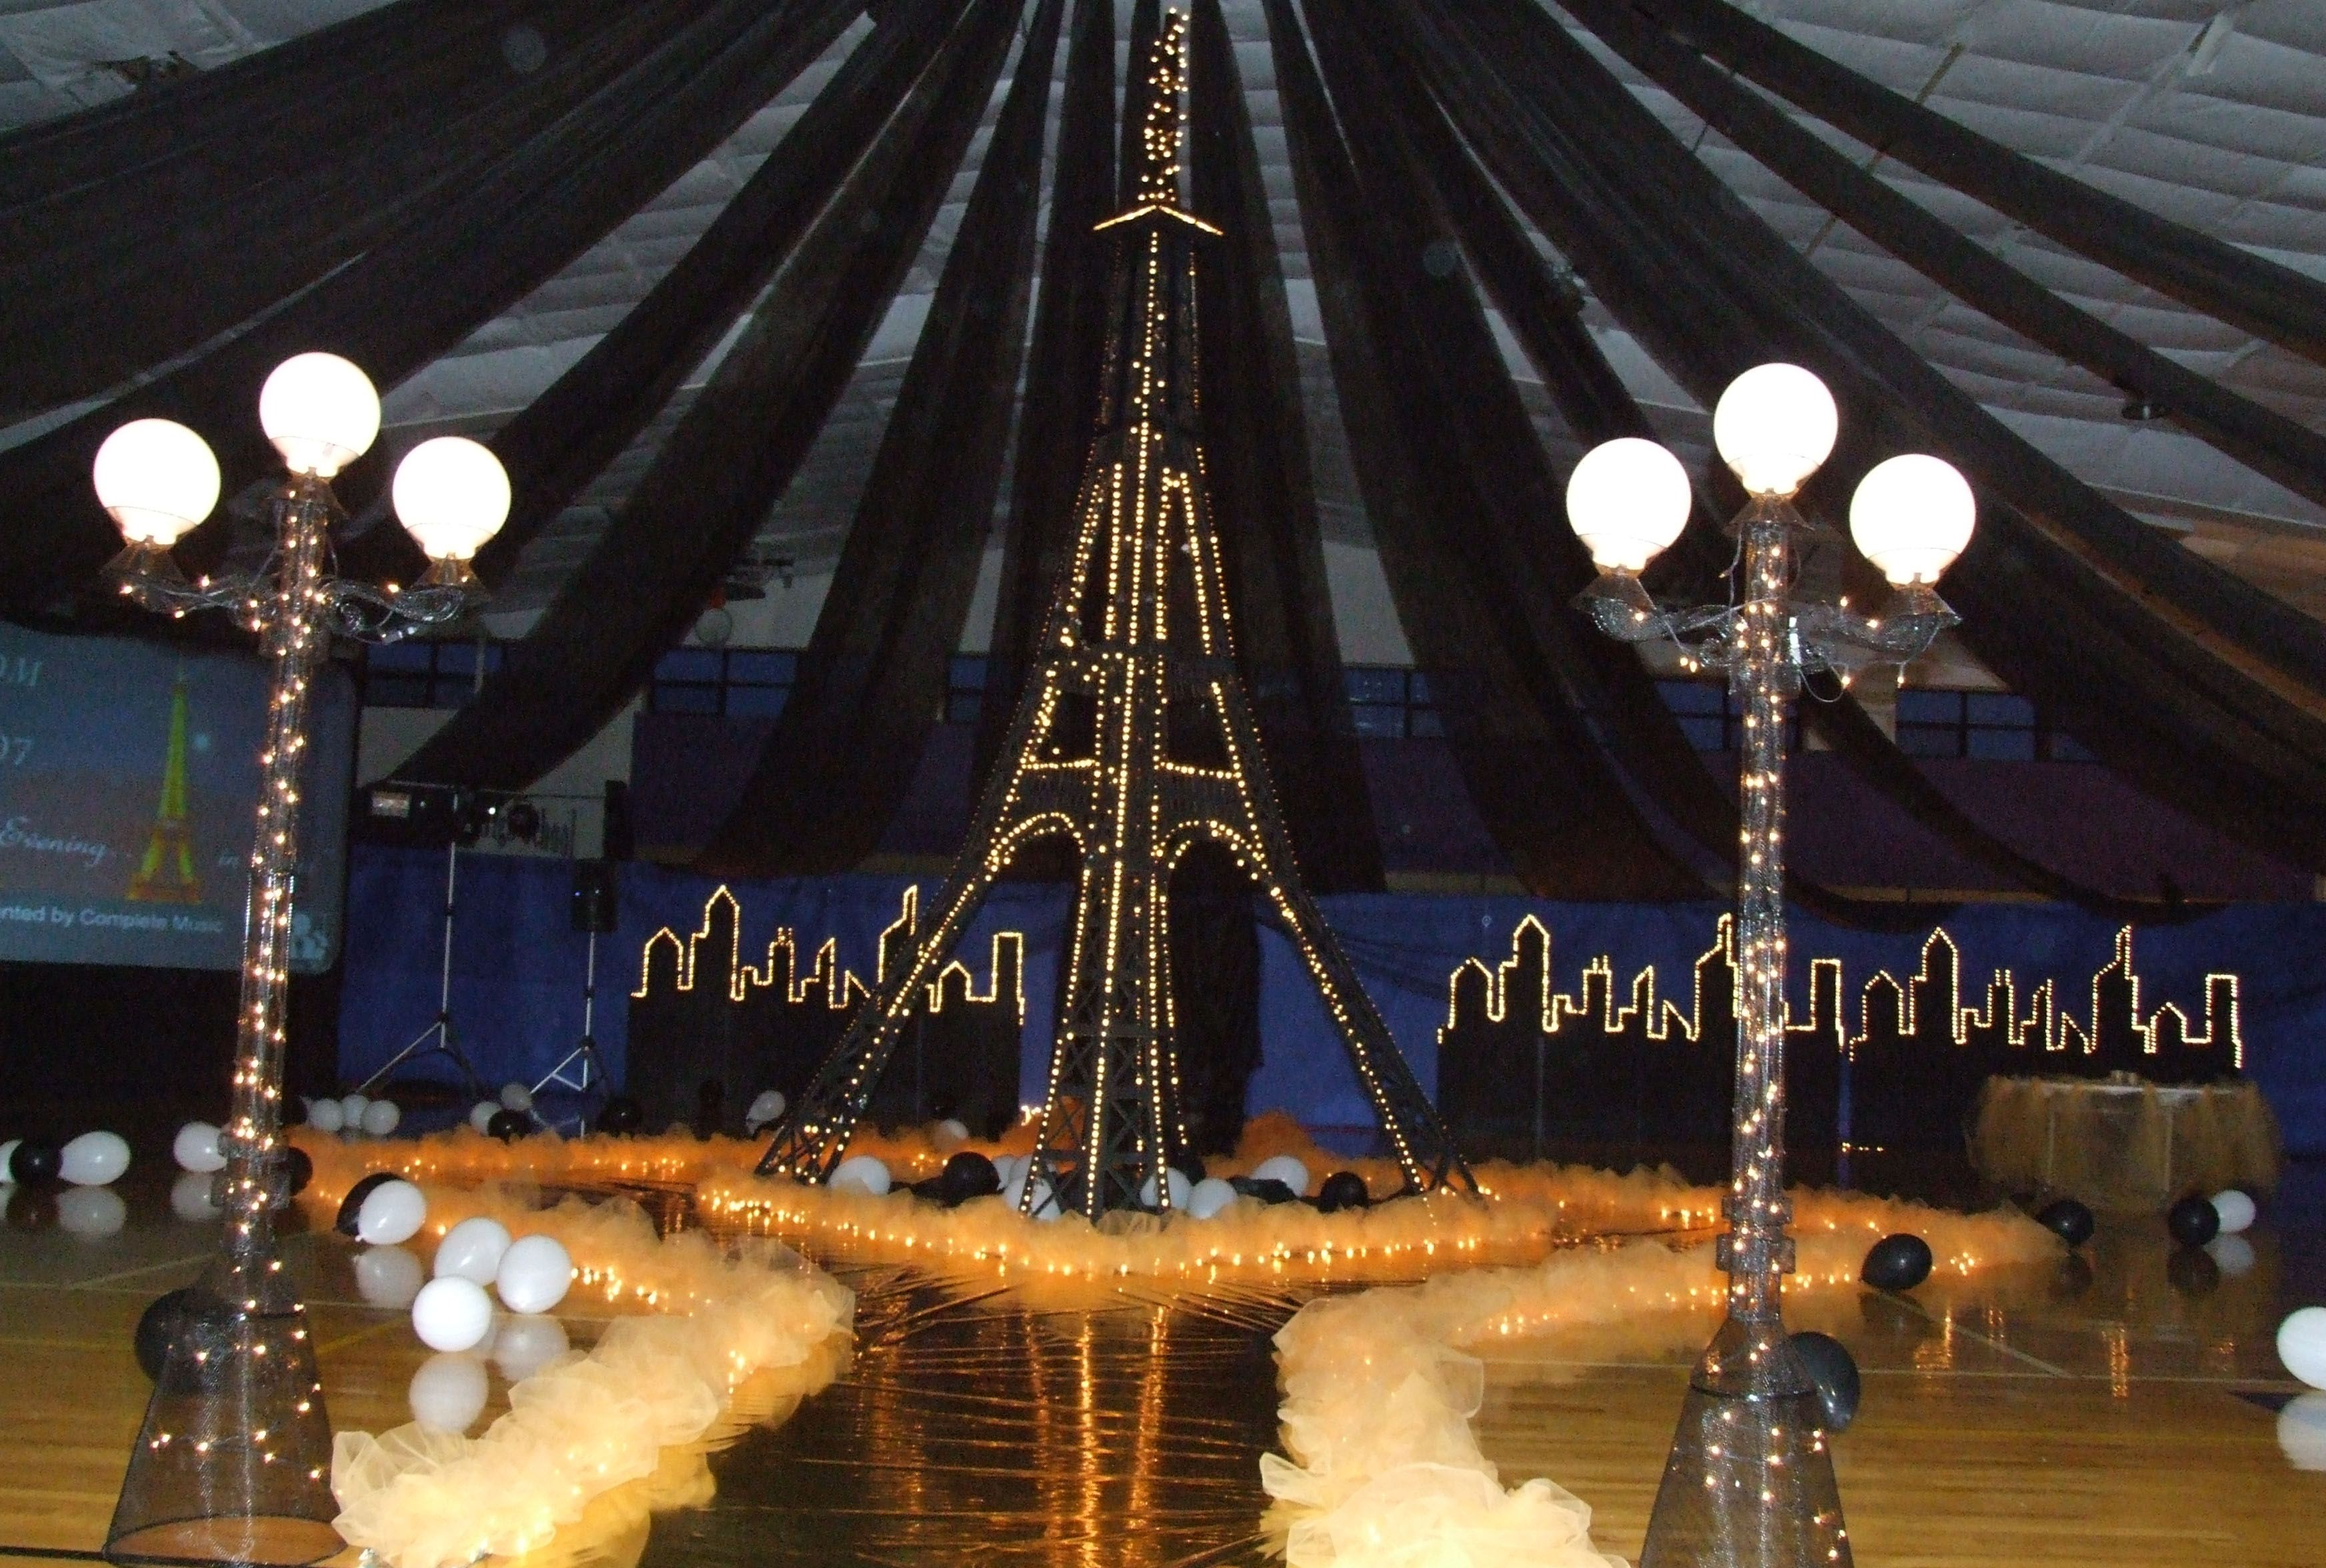 17 Best images about Prom Themes on Pinterest   Prom themes ...